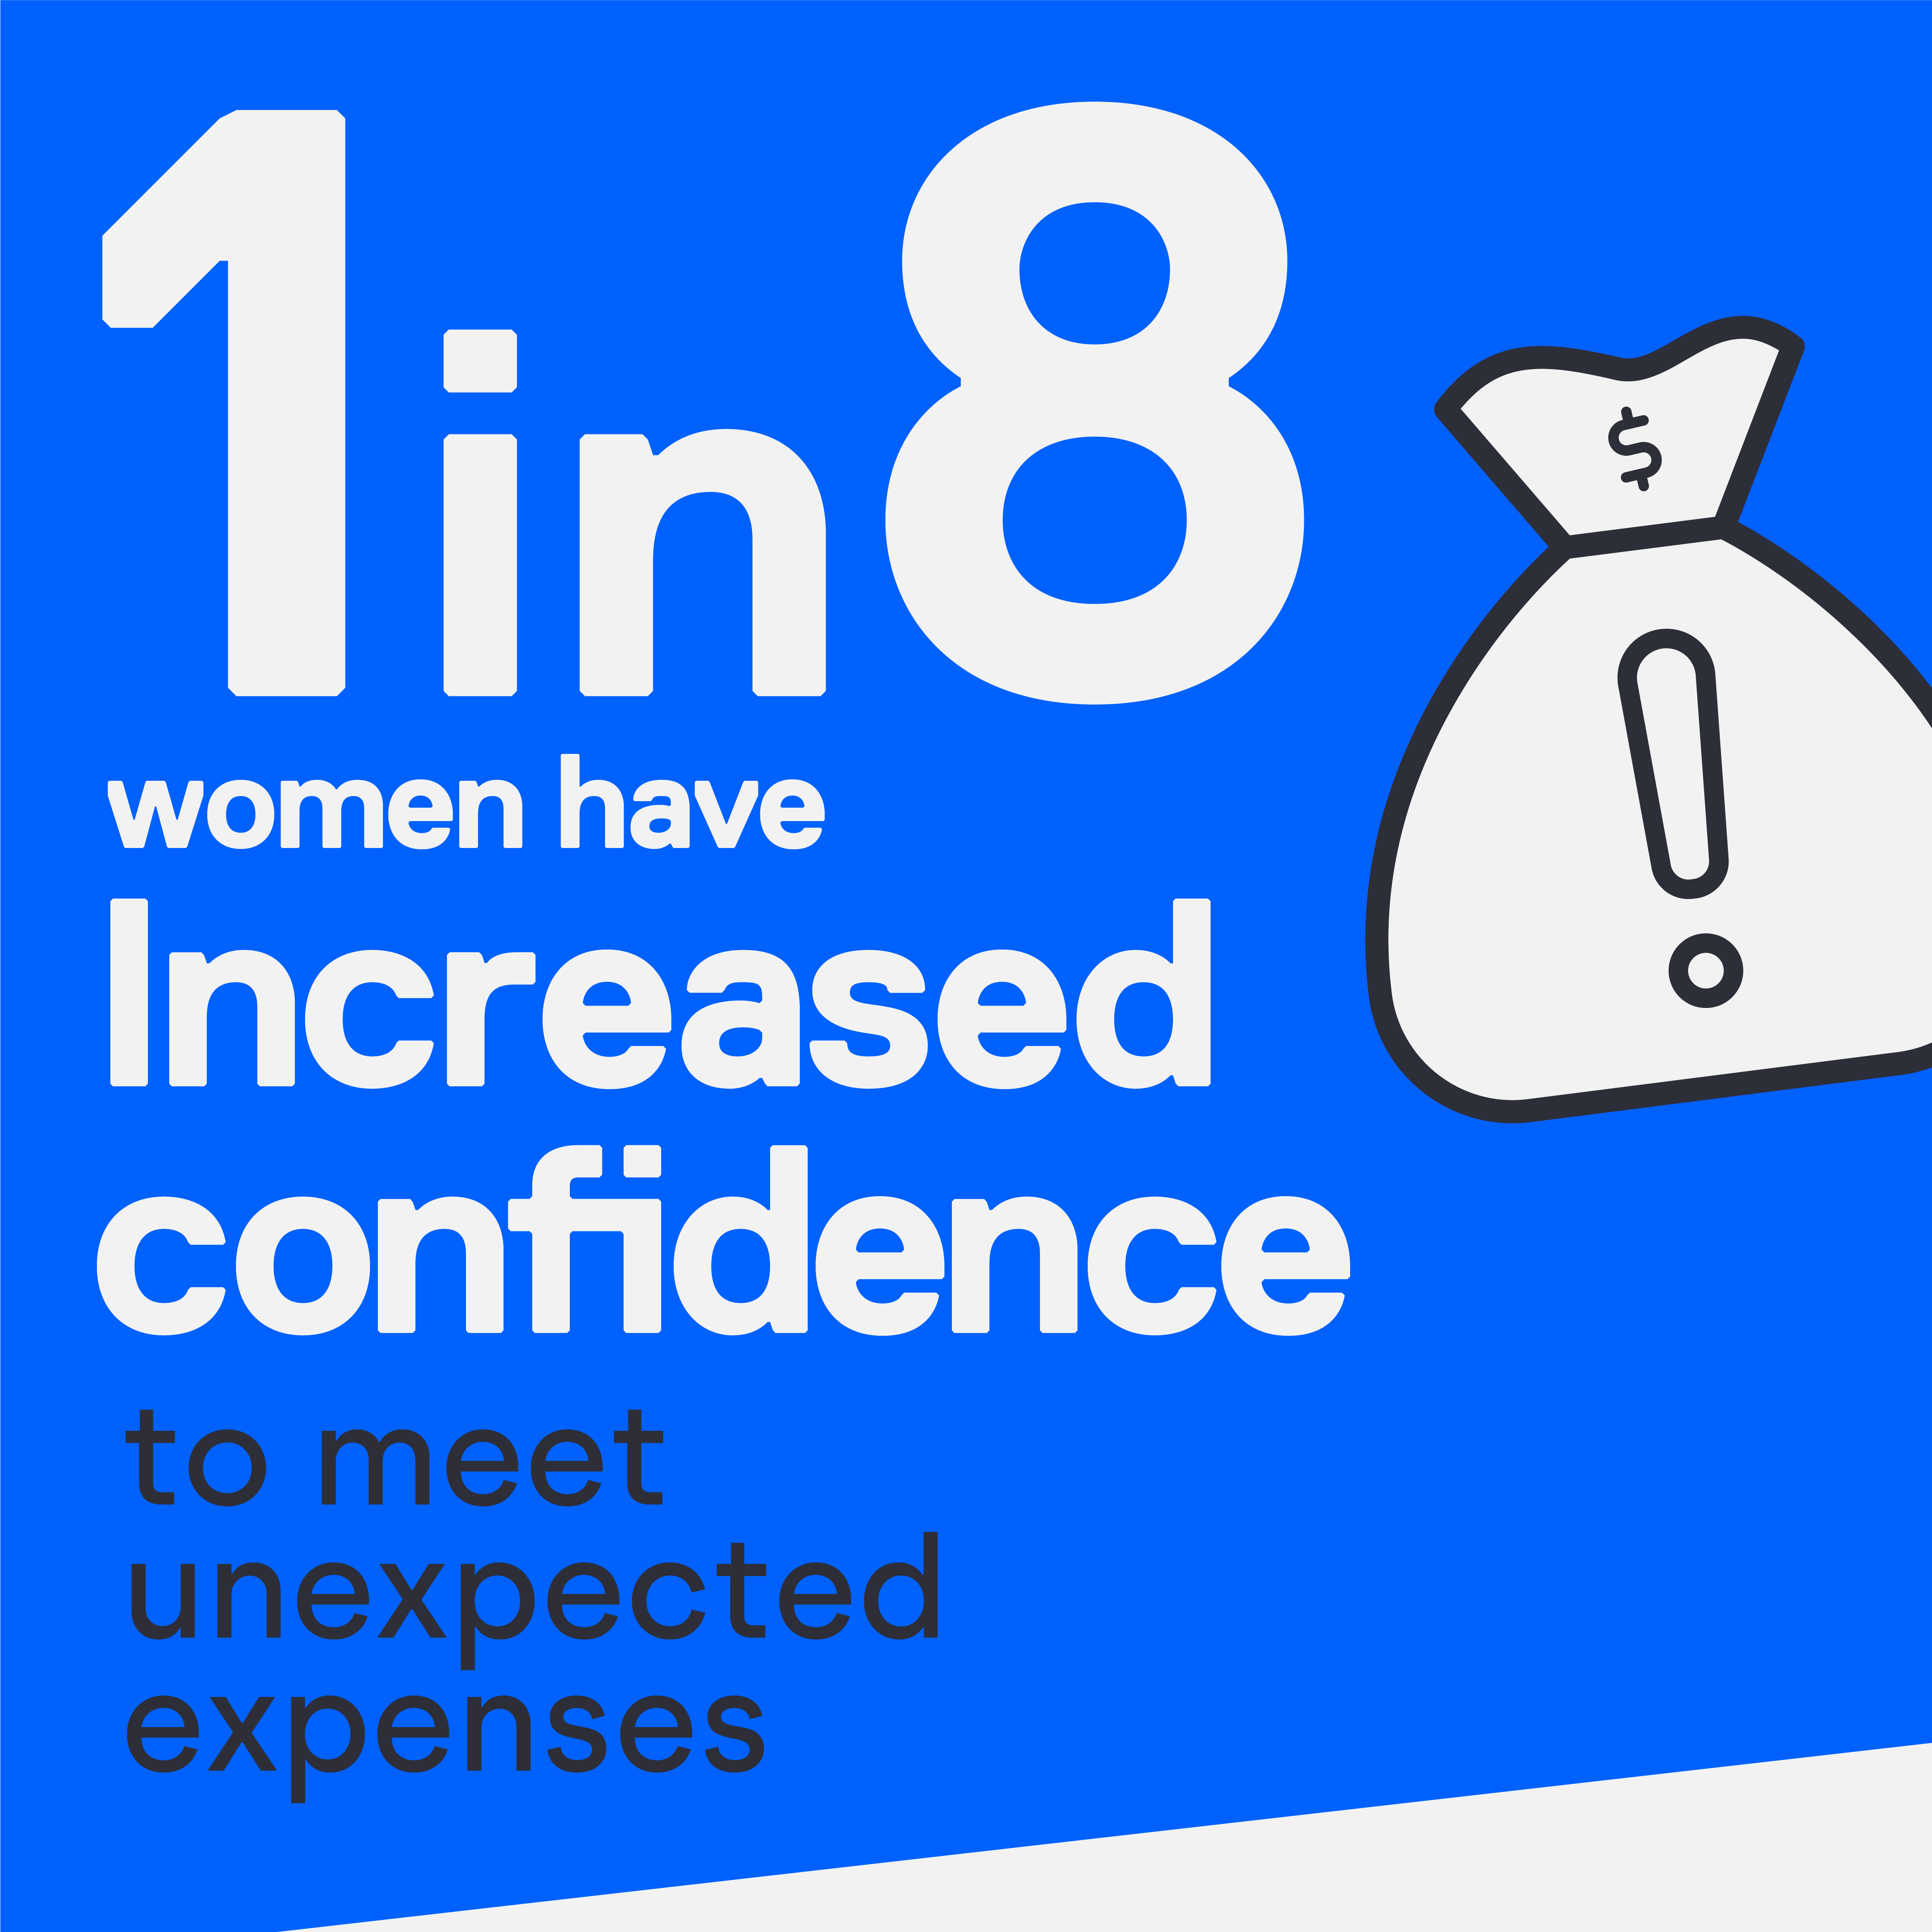 Infographic: 1 in 8 women have increased confidence to meet unexpected expenses